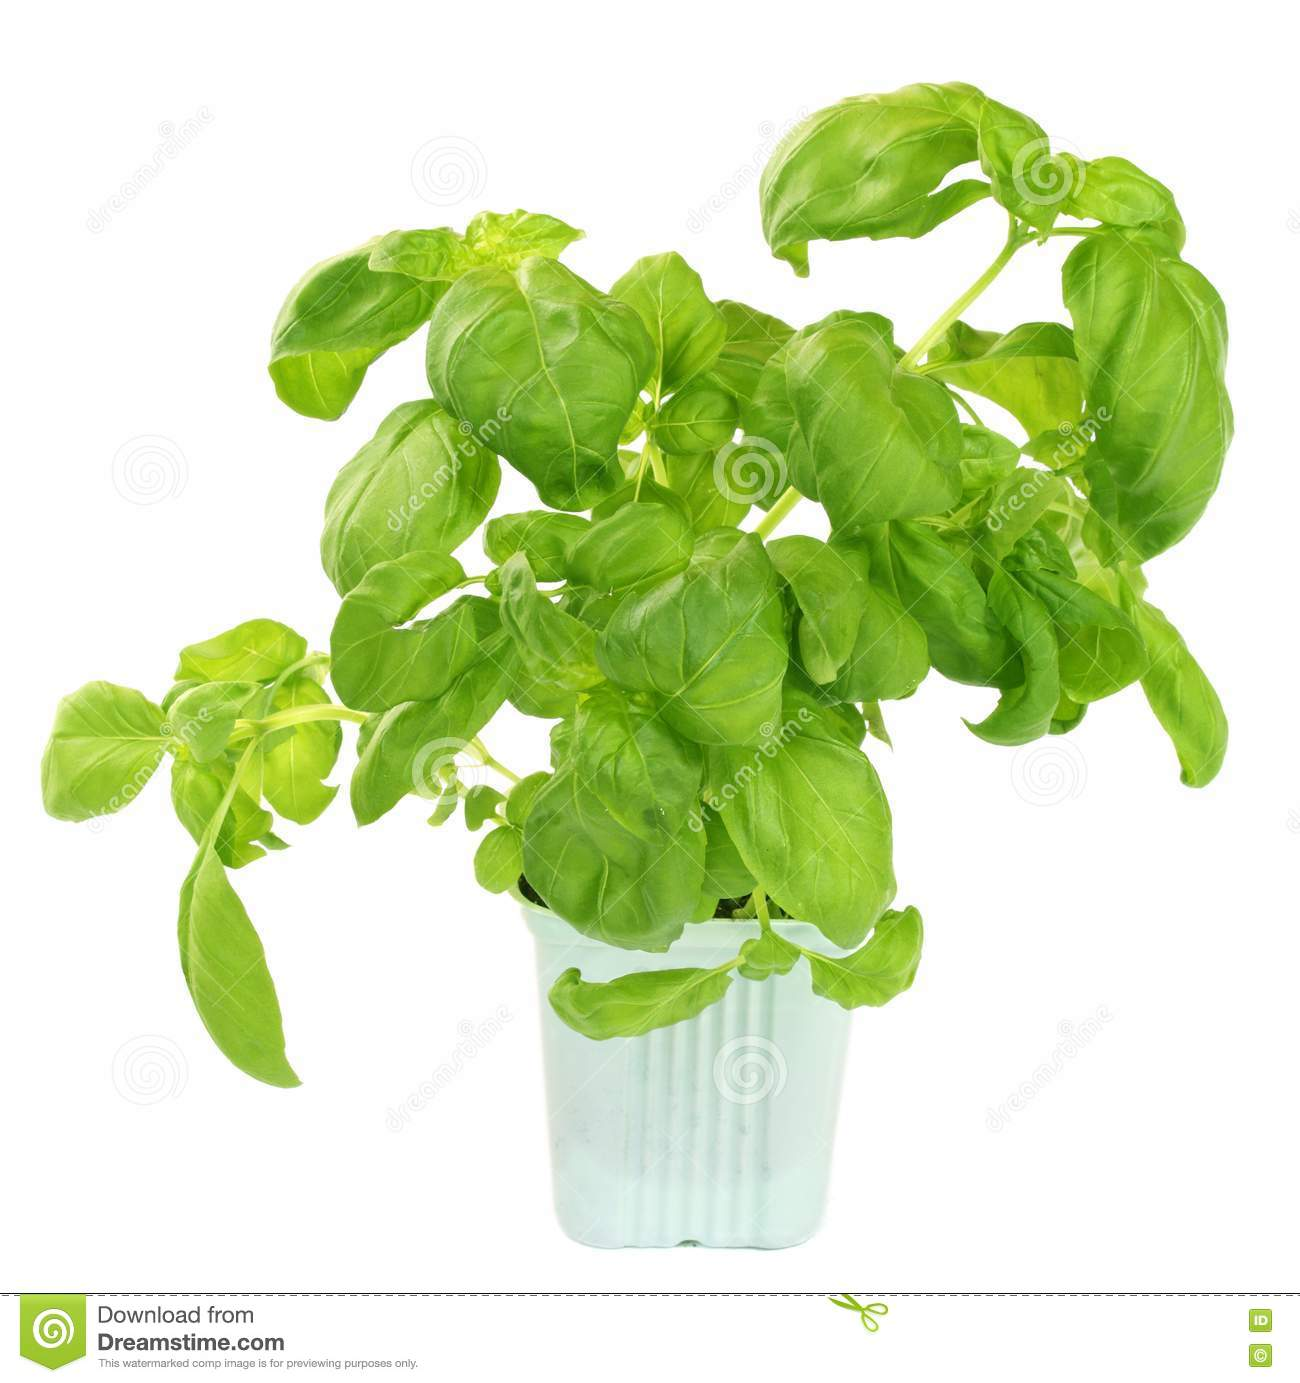 how to cut fresh basil from plant